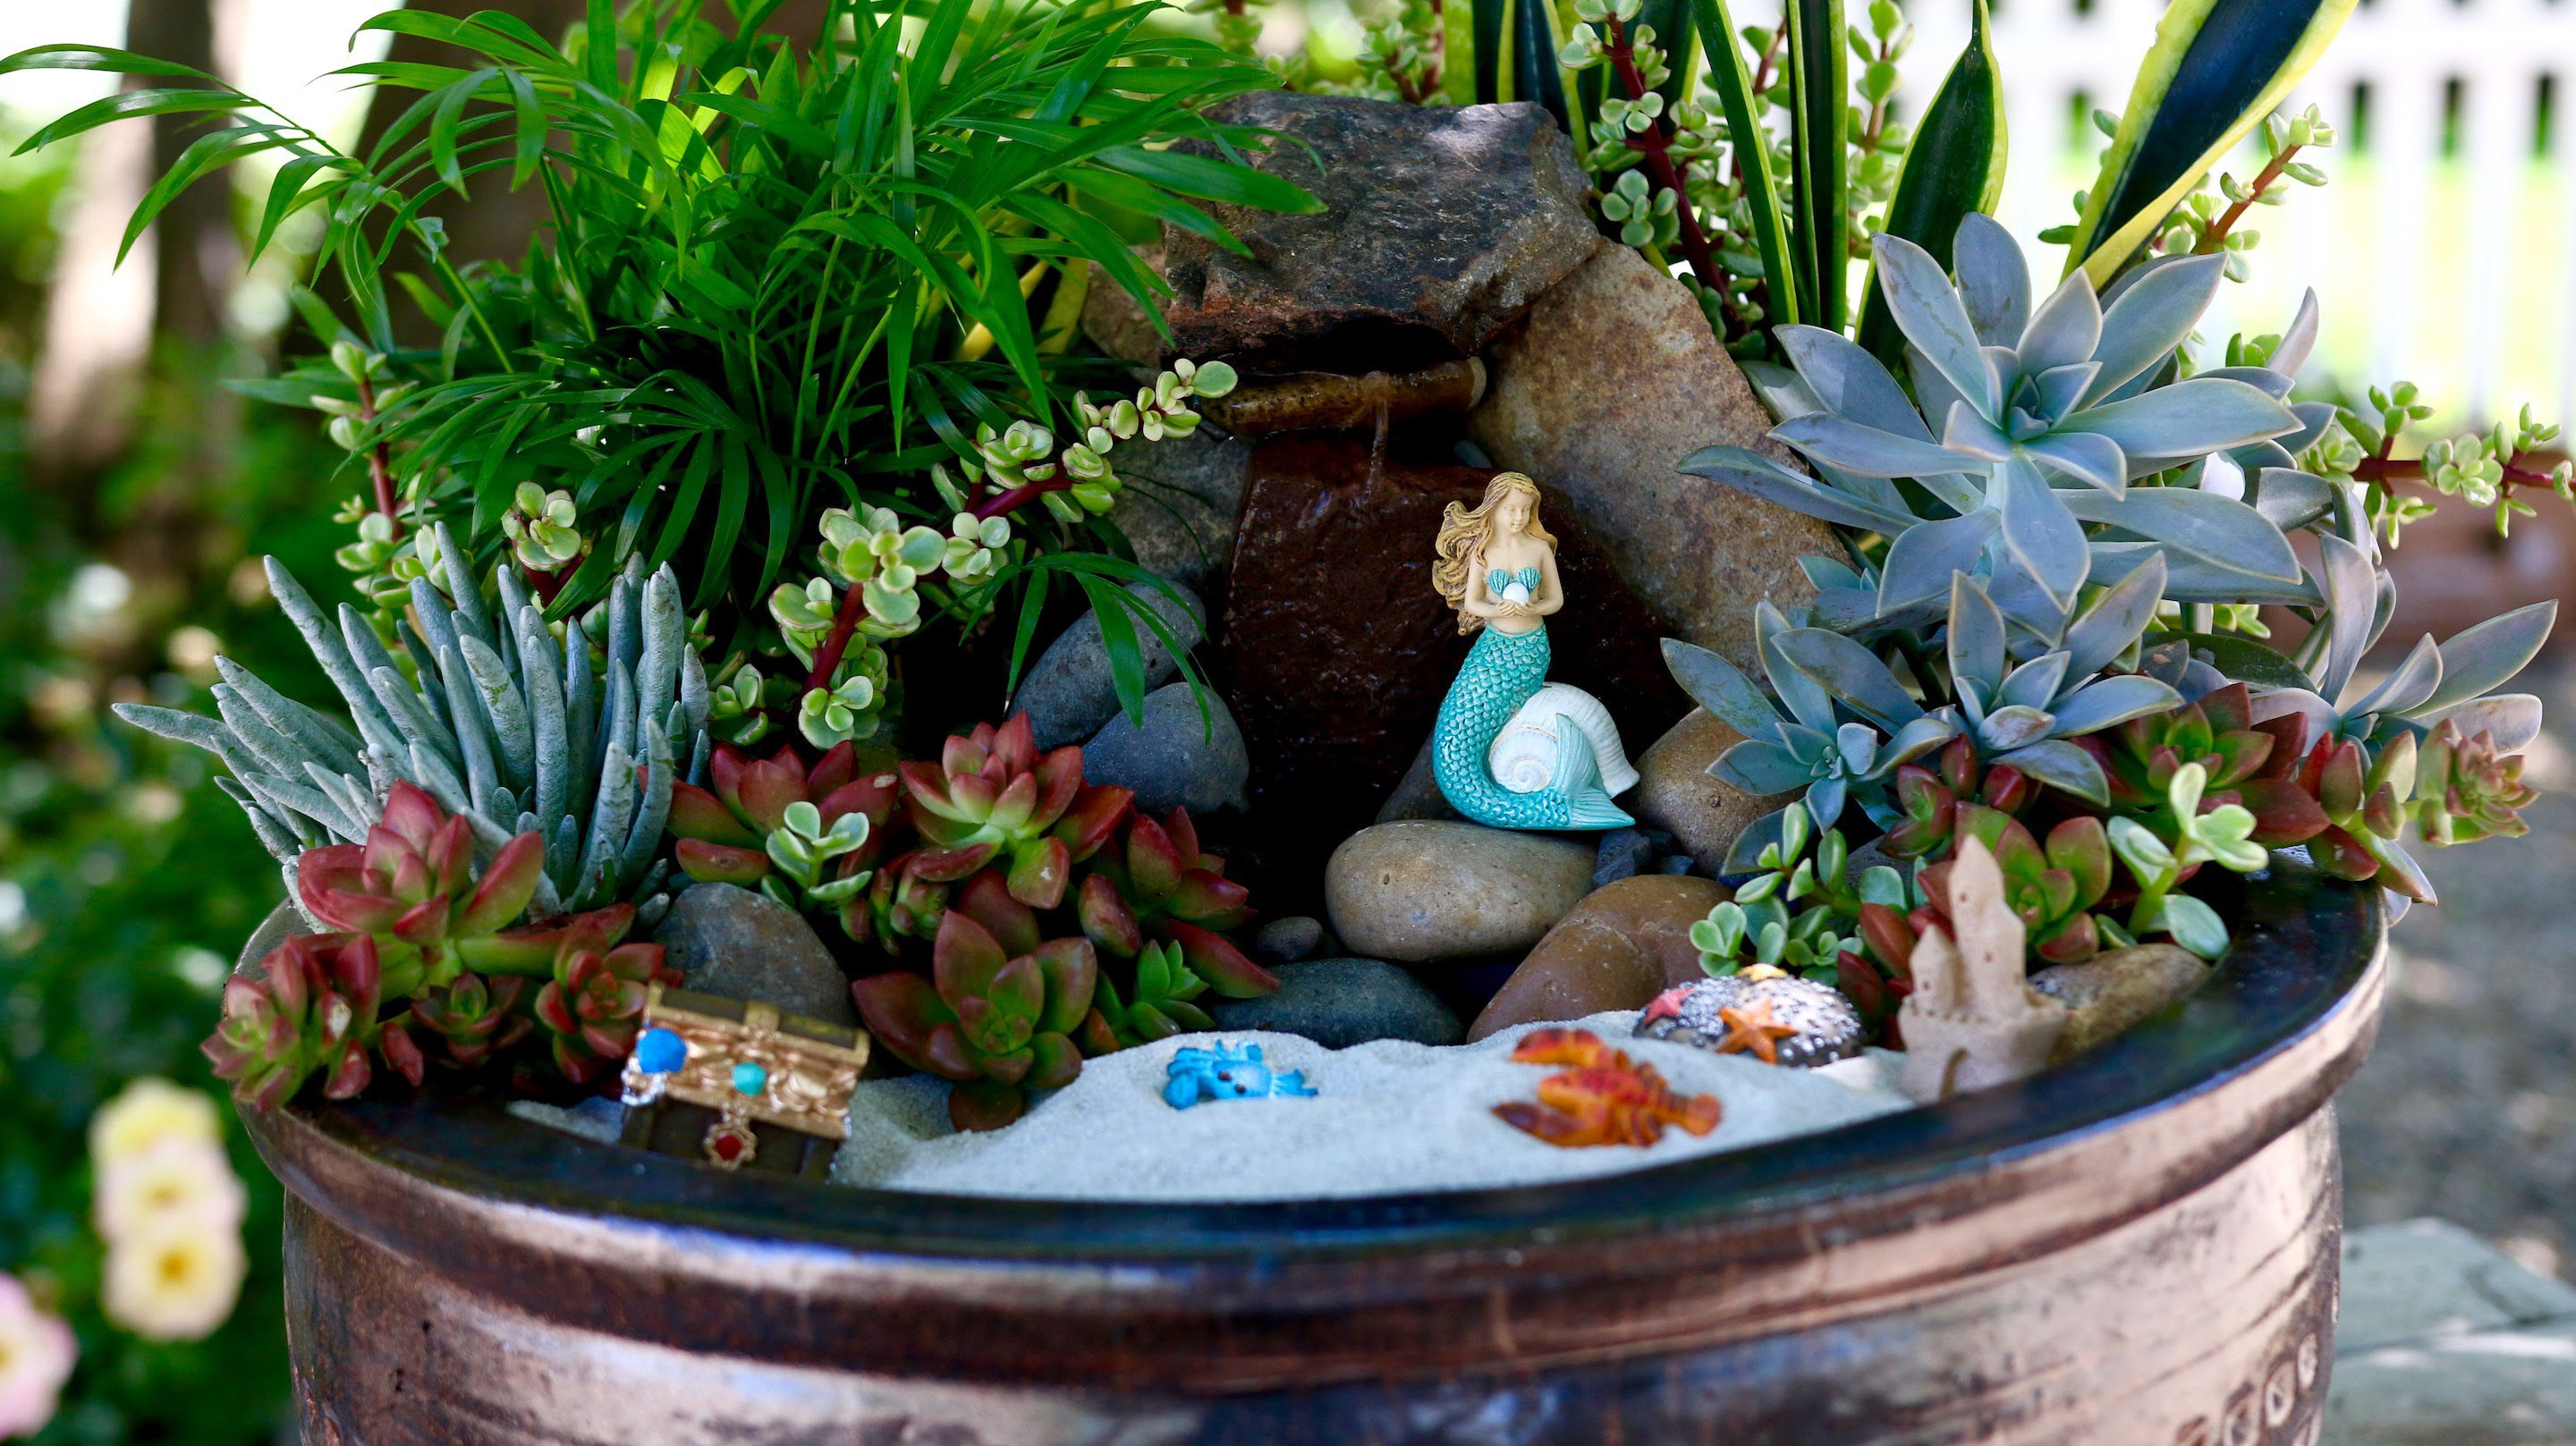 event details - How To Build A Fairy Garden